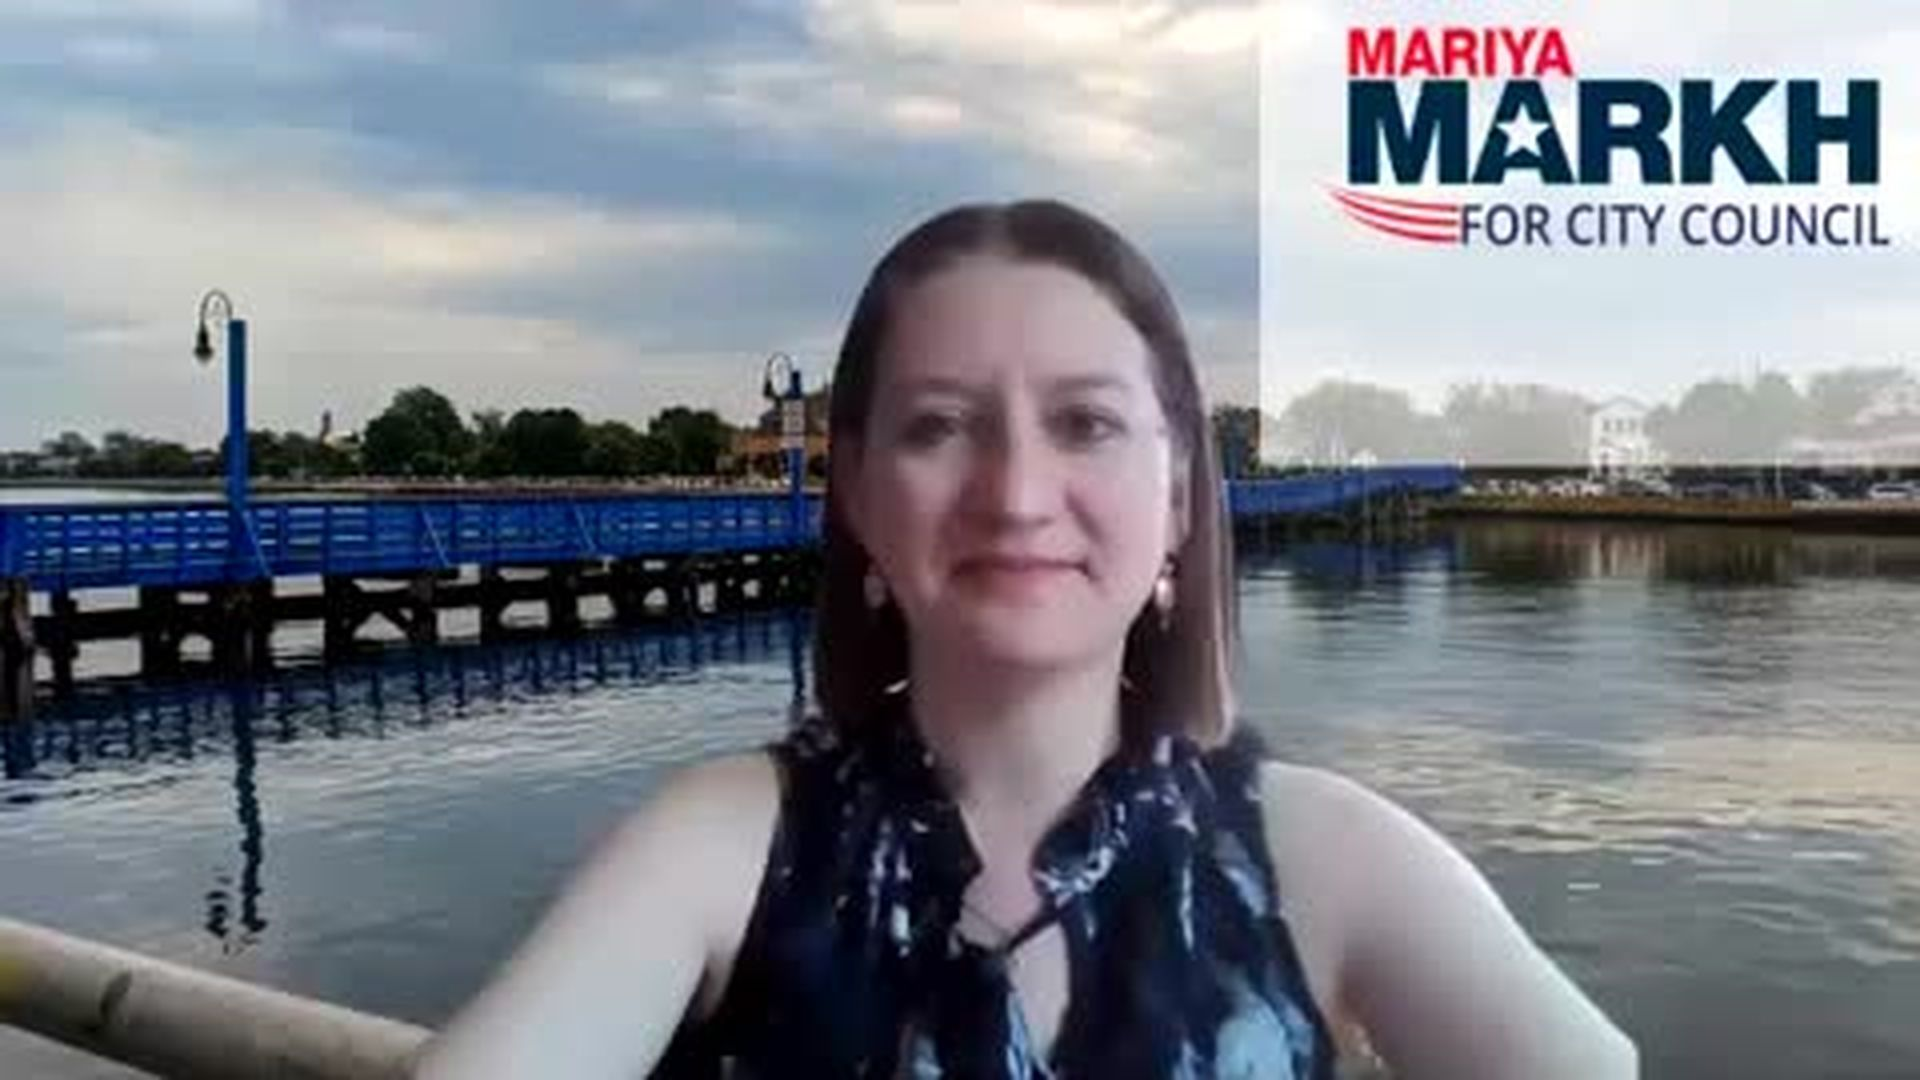 Mariya Markh   Democratic Candidate for New York City Council District 48